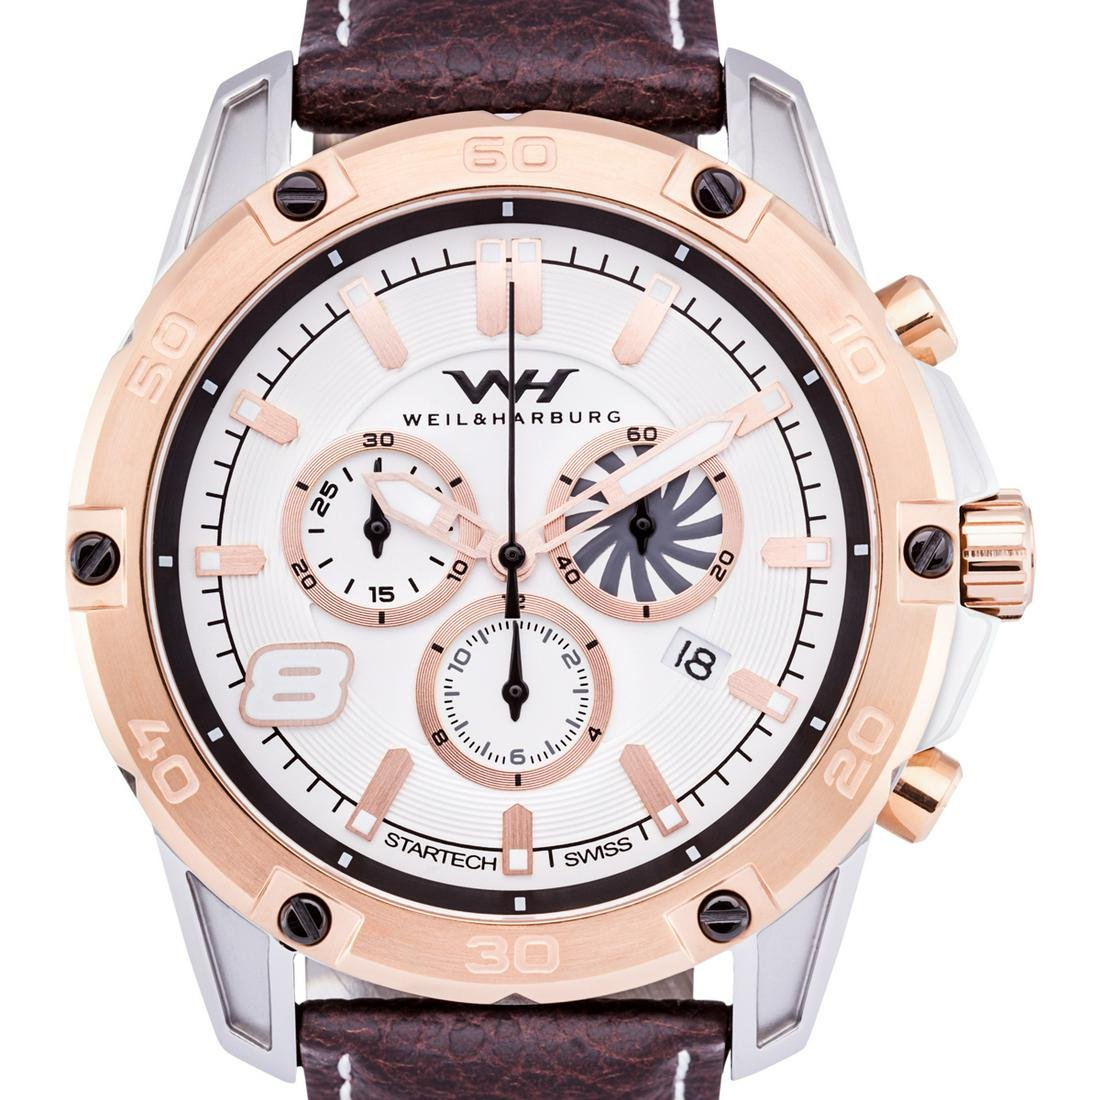 Weil & Harburg Swiss Chronograph Huxley Mens Watch